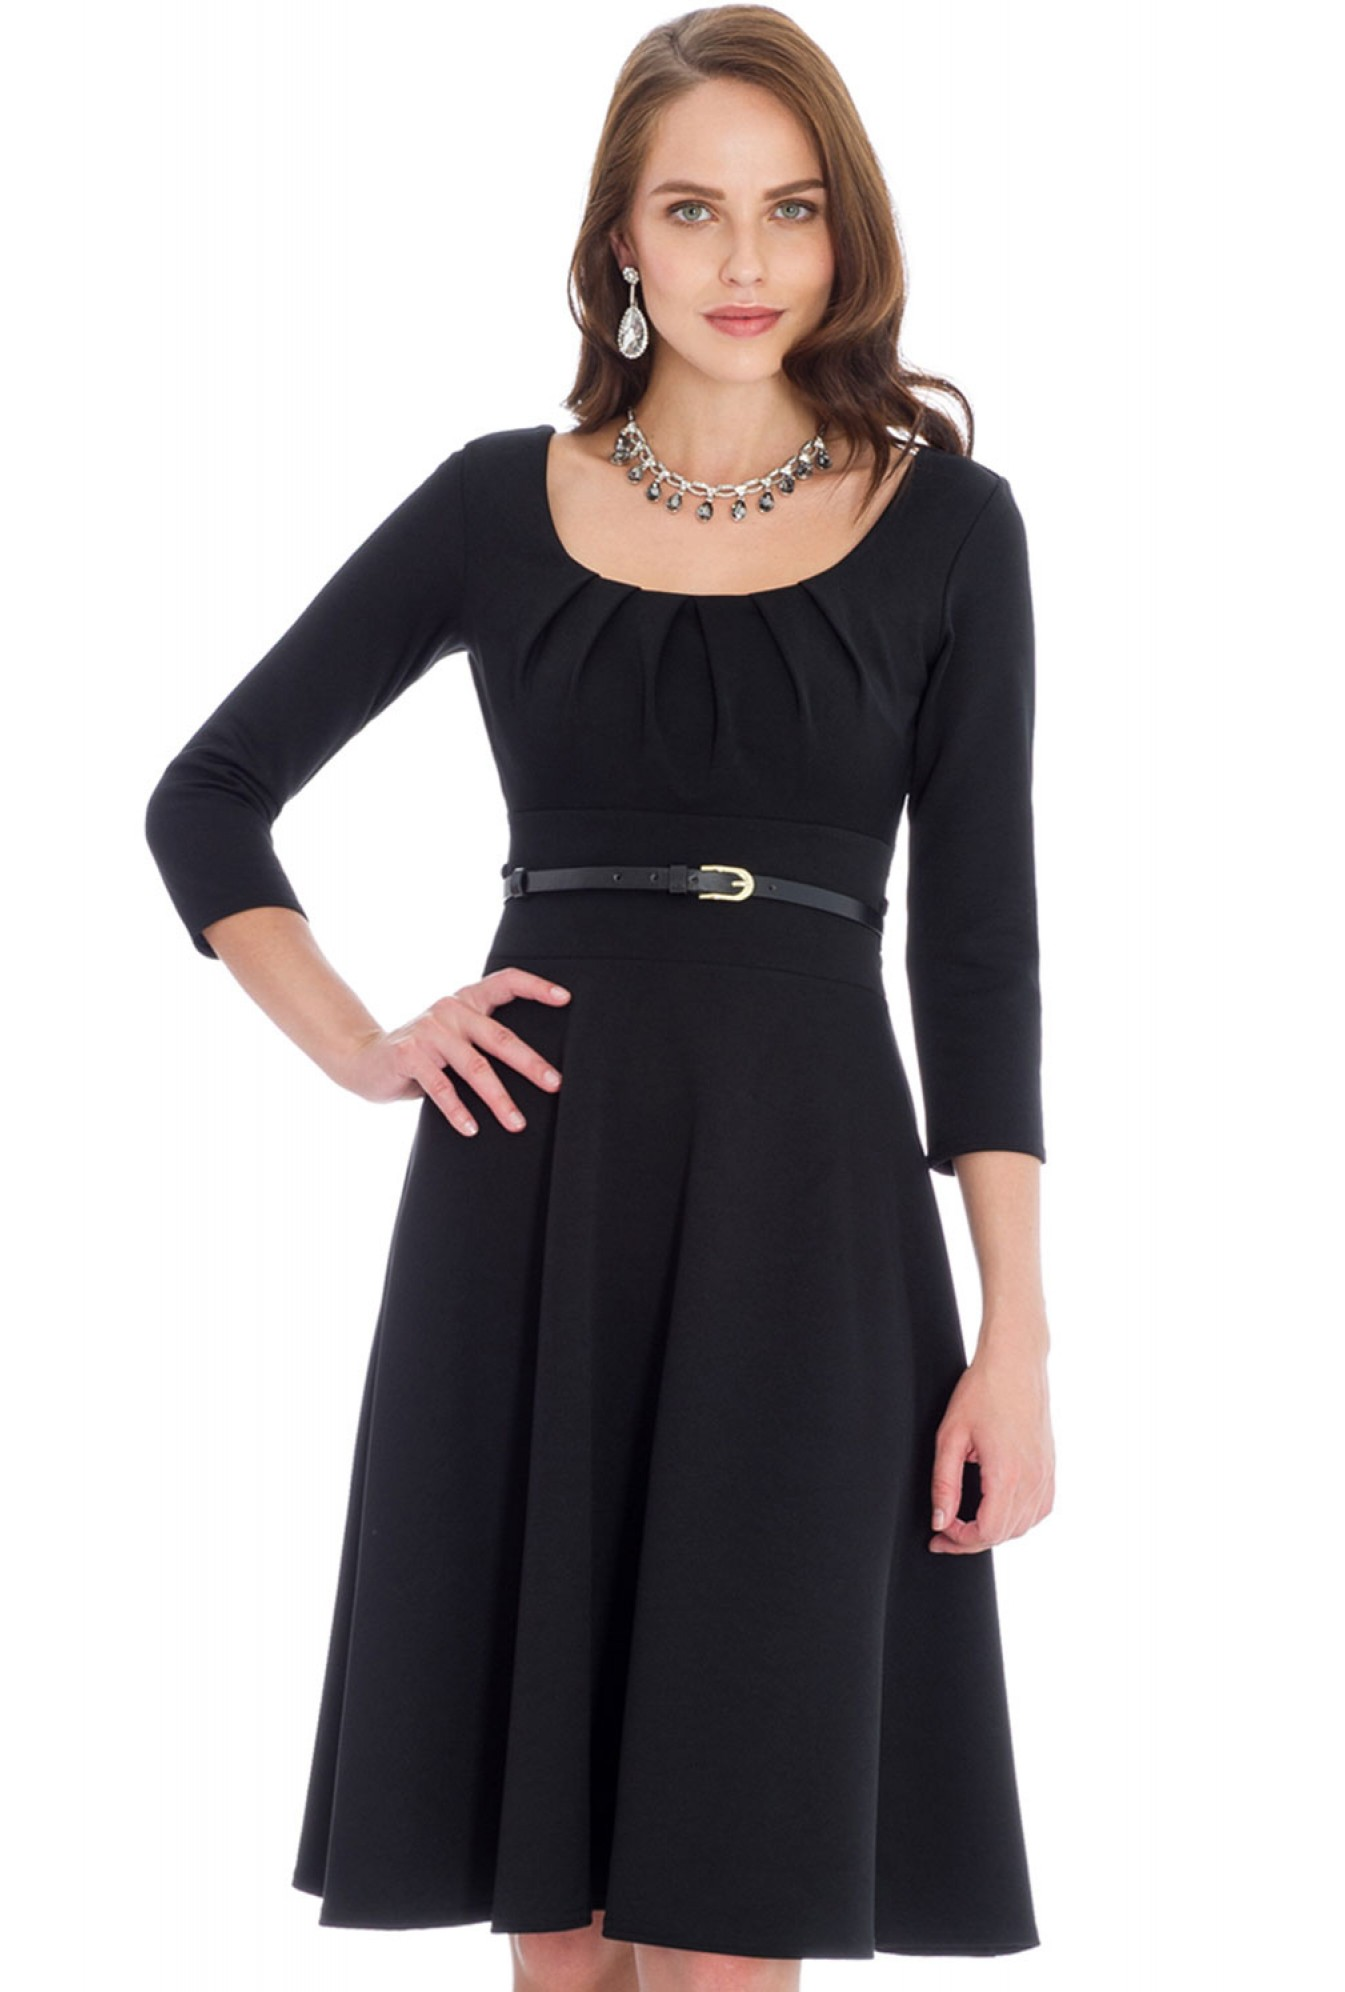 c42fee10ea9 Goddiva Flavia Full Skirt Midi Dress With Belt in Black